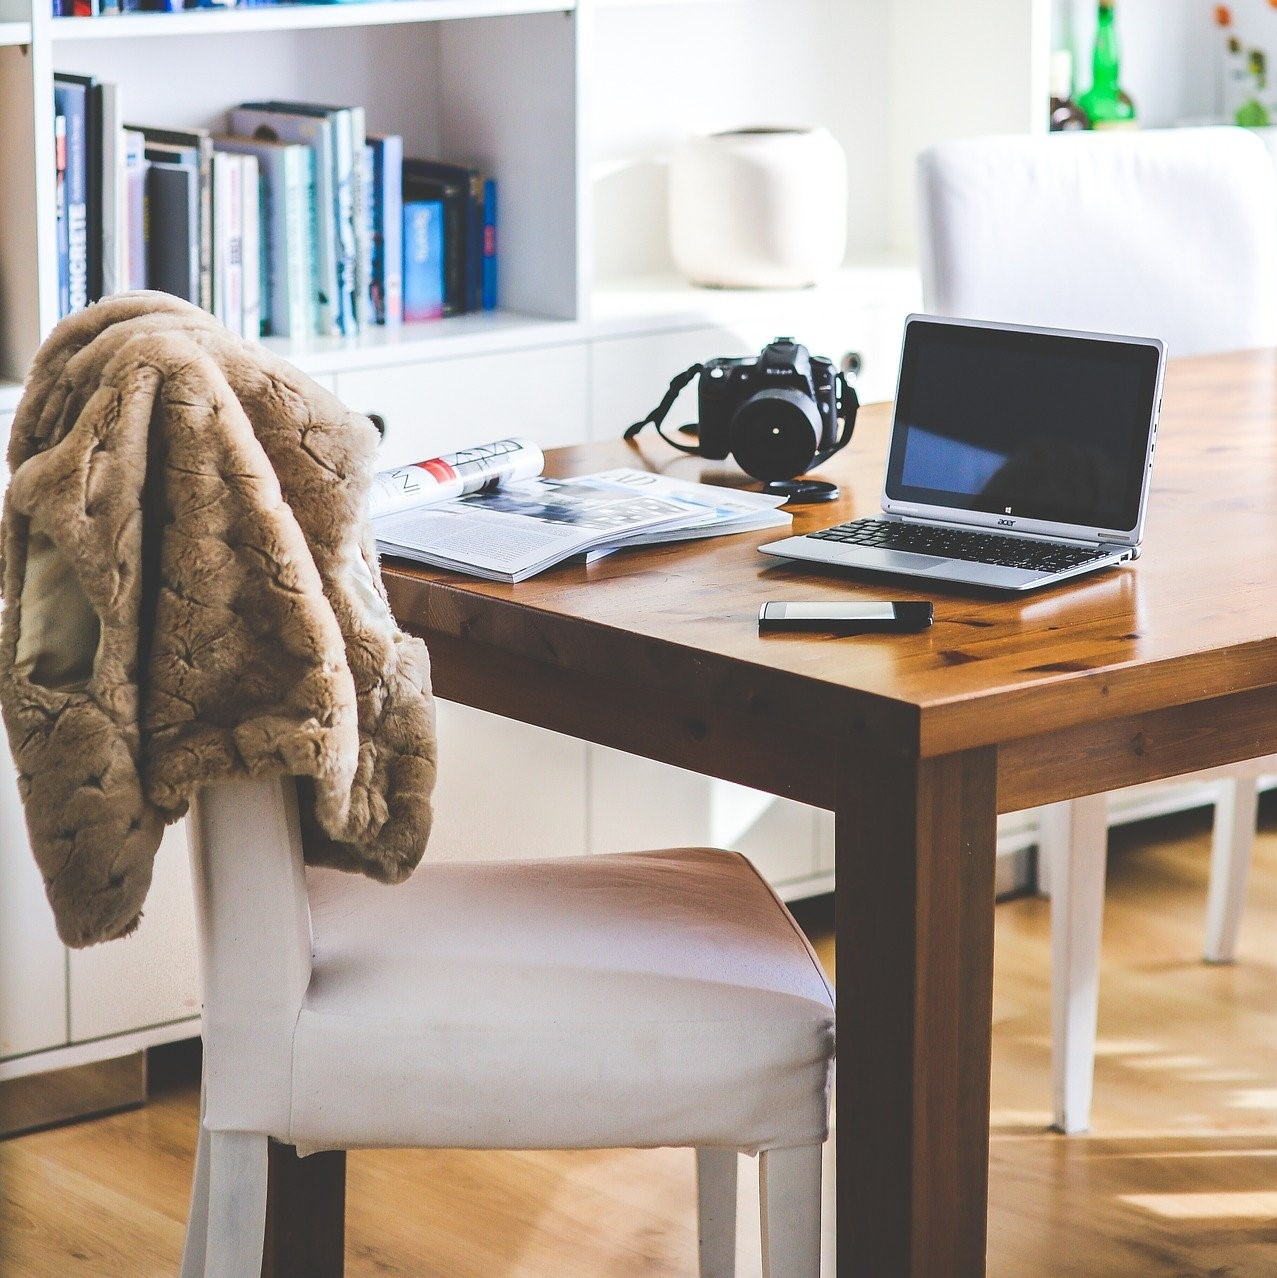 Firms split furniture budgets between home and office